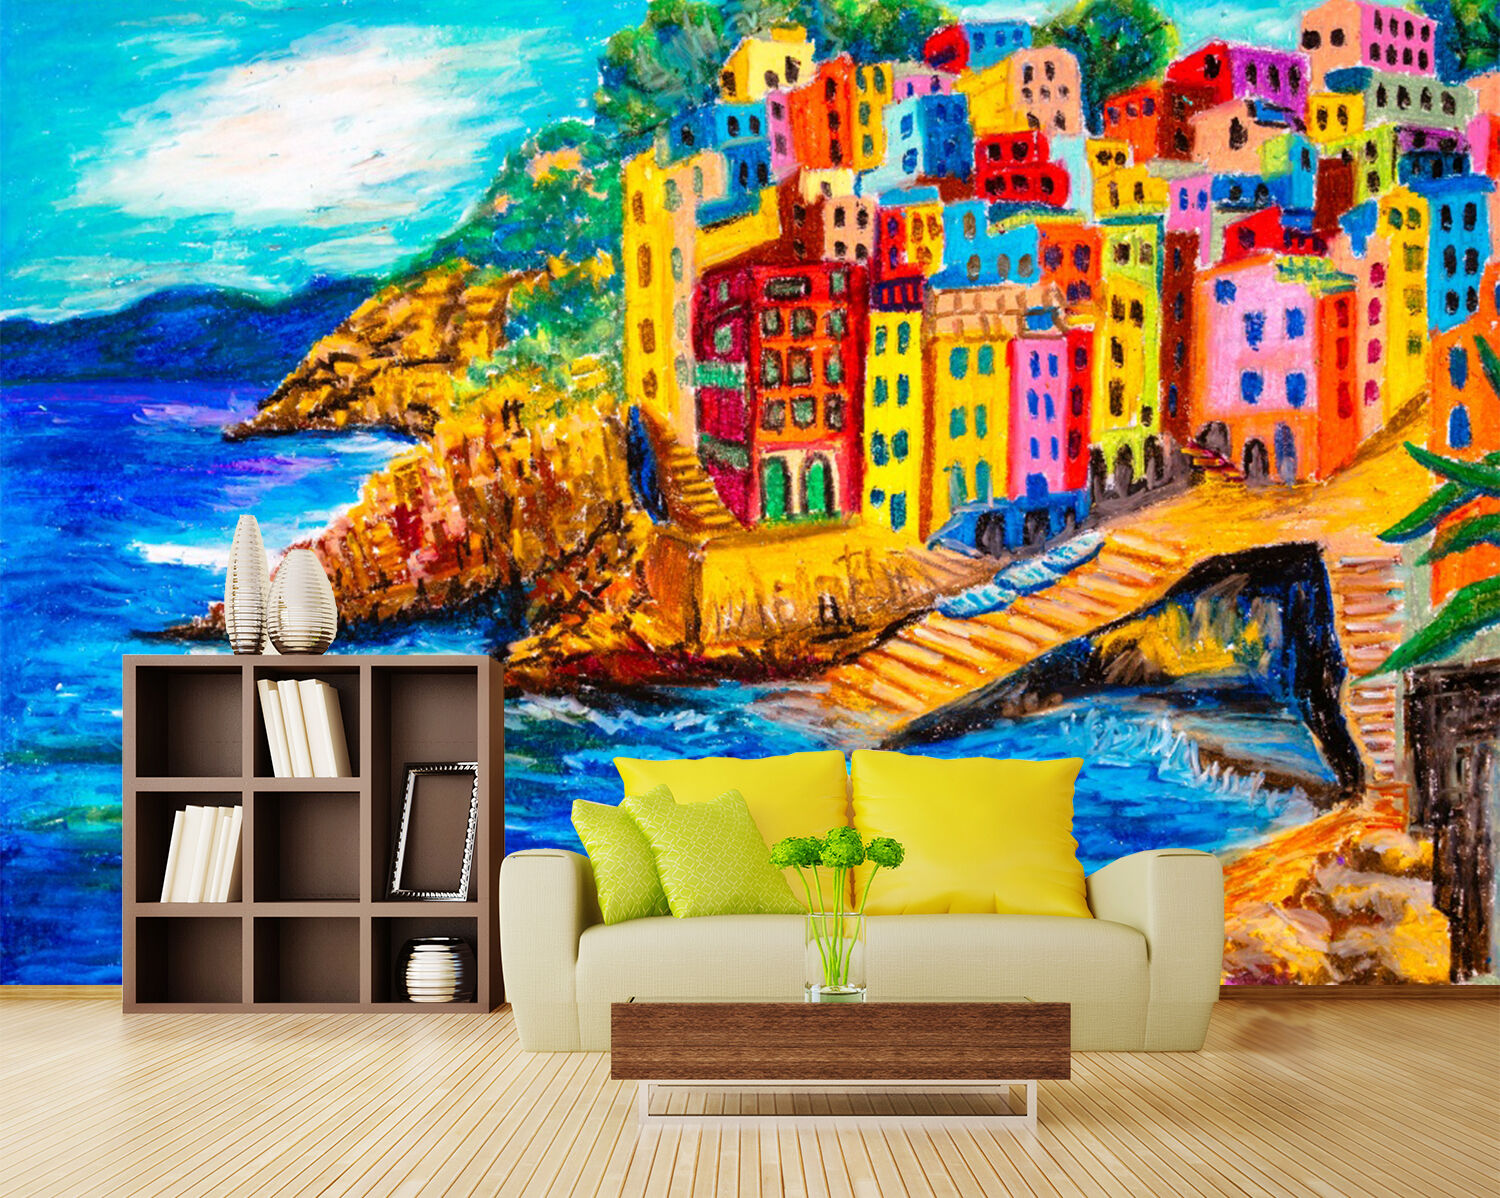 3D Seaside Town Painting 039 Paper Wall Print Wall Decal Wall Deco Indoor Murals